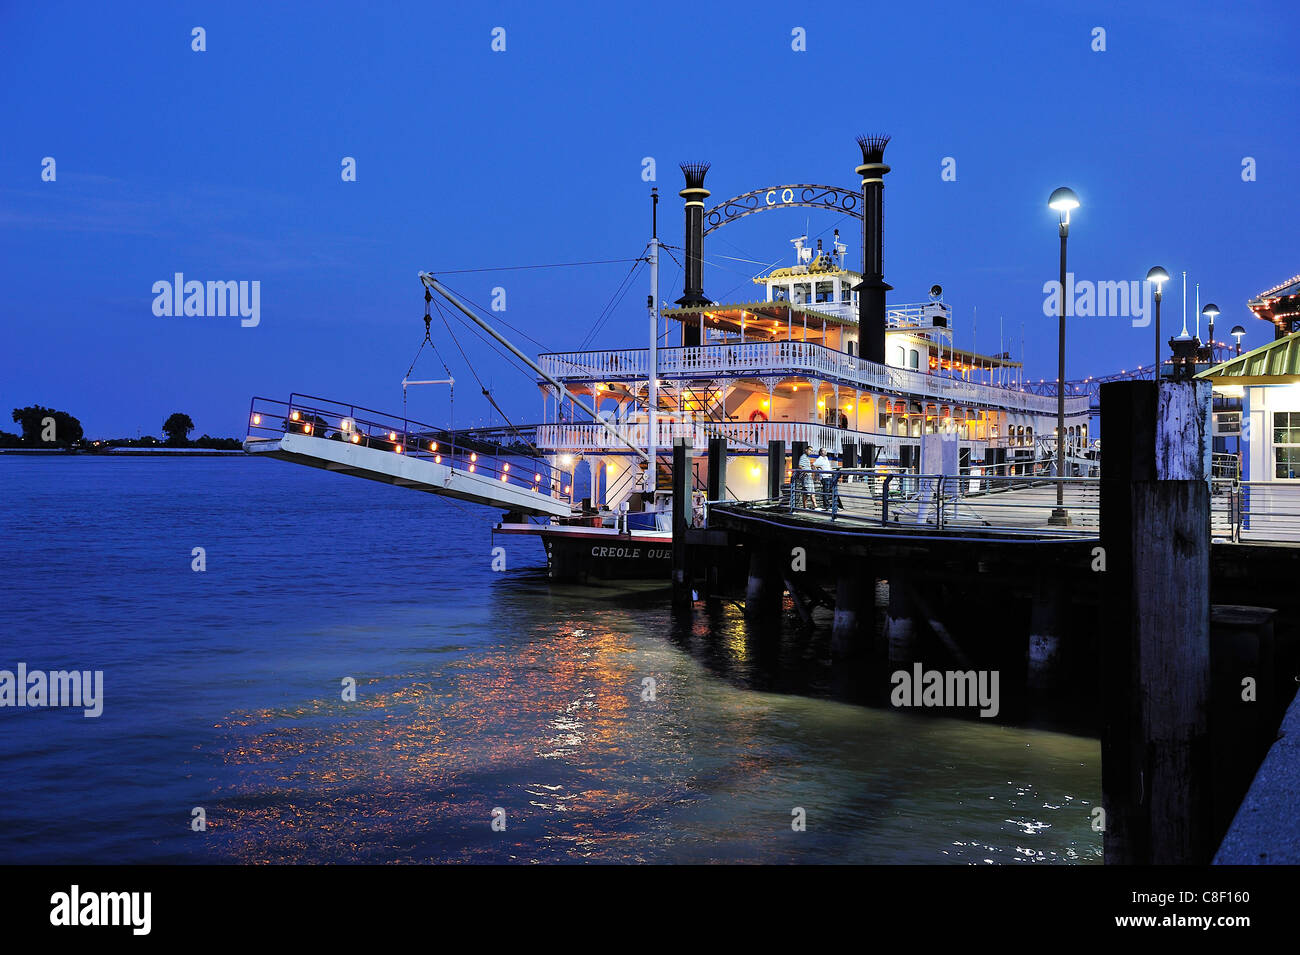 Creole Queen, Riverwalk, Mississippi, River, French Quarter, New Orleans, Louisiana, USA, United States, America, - Stock Image